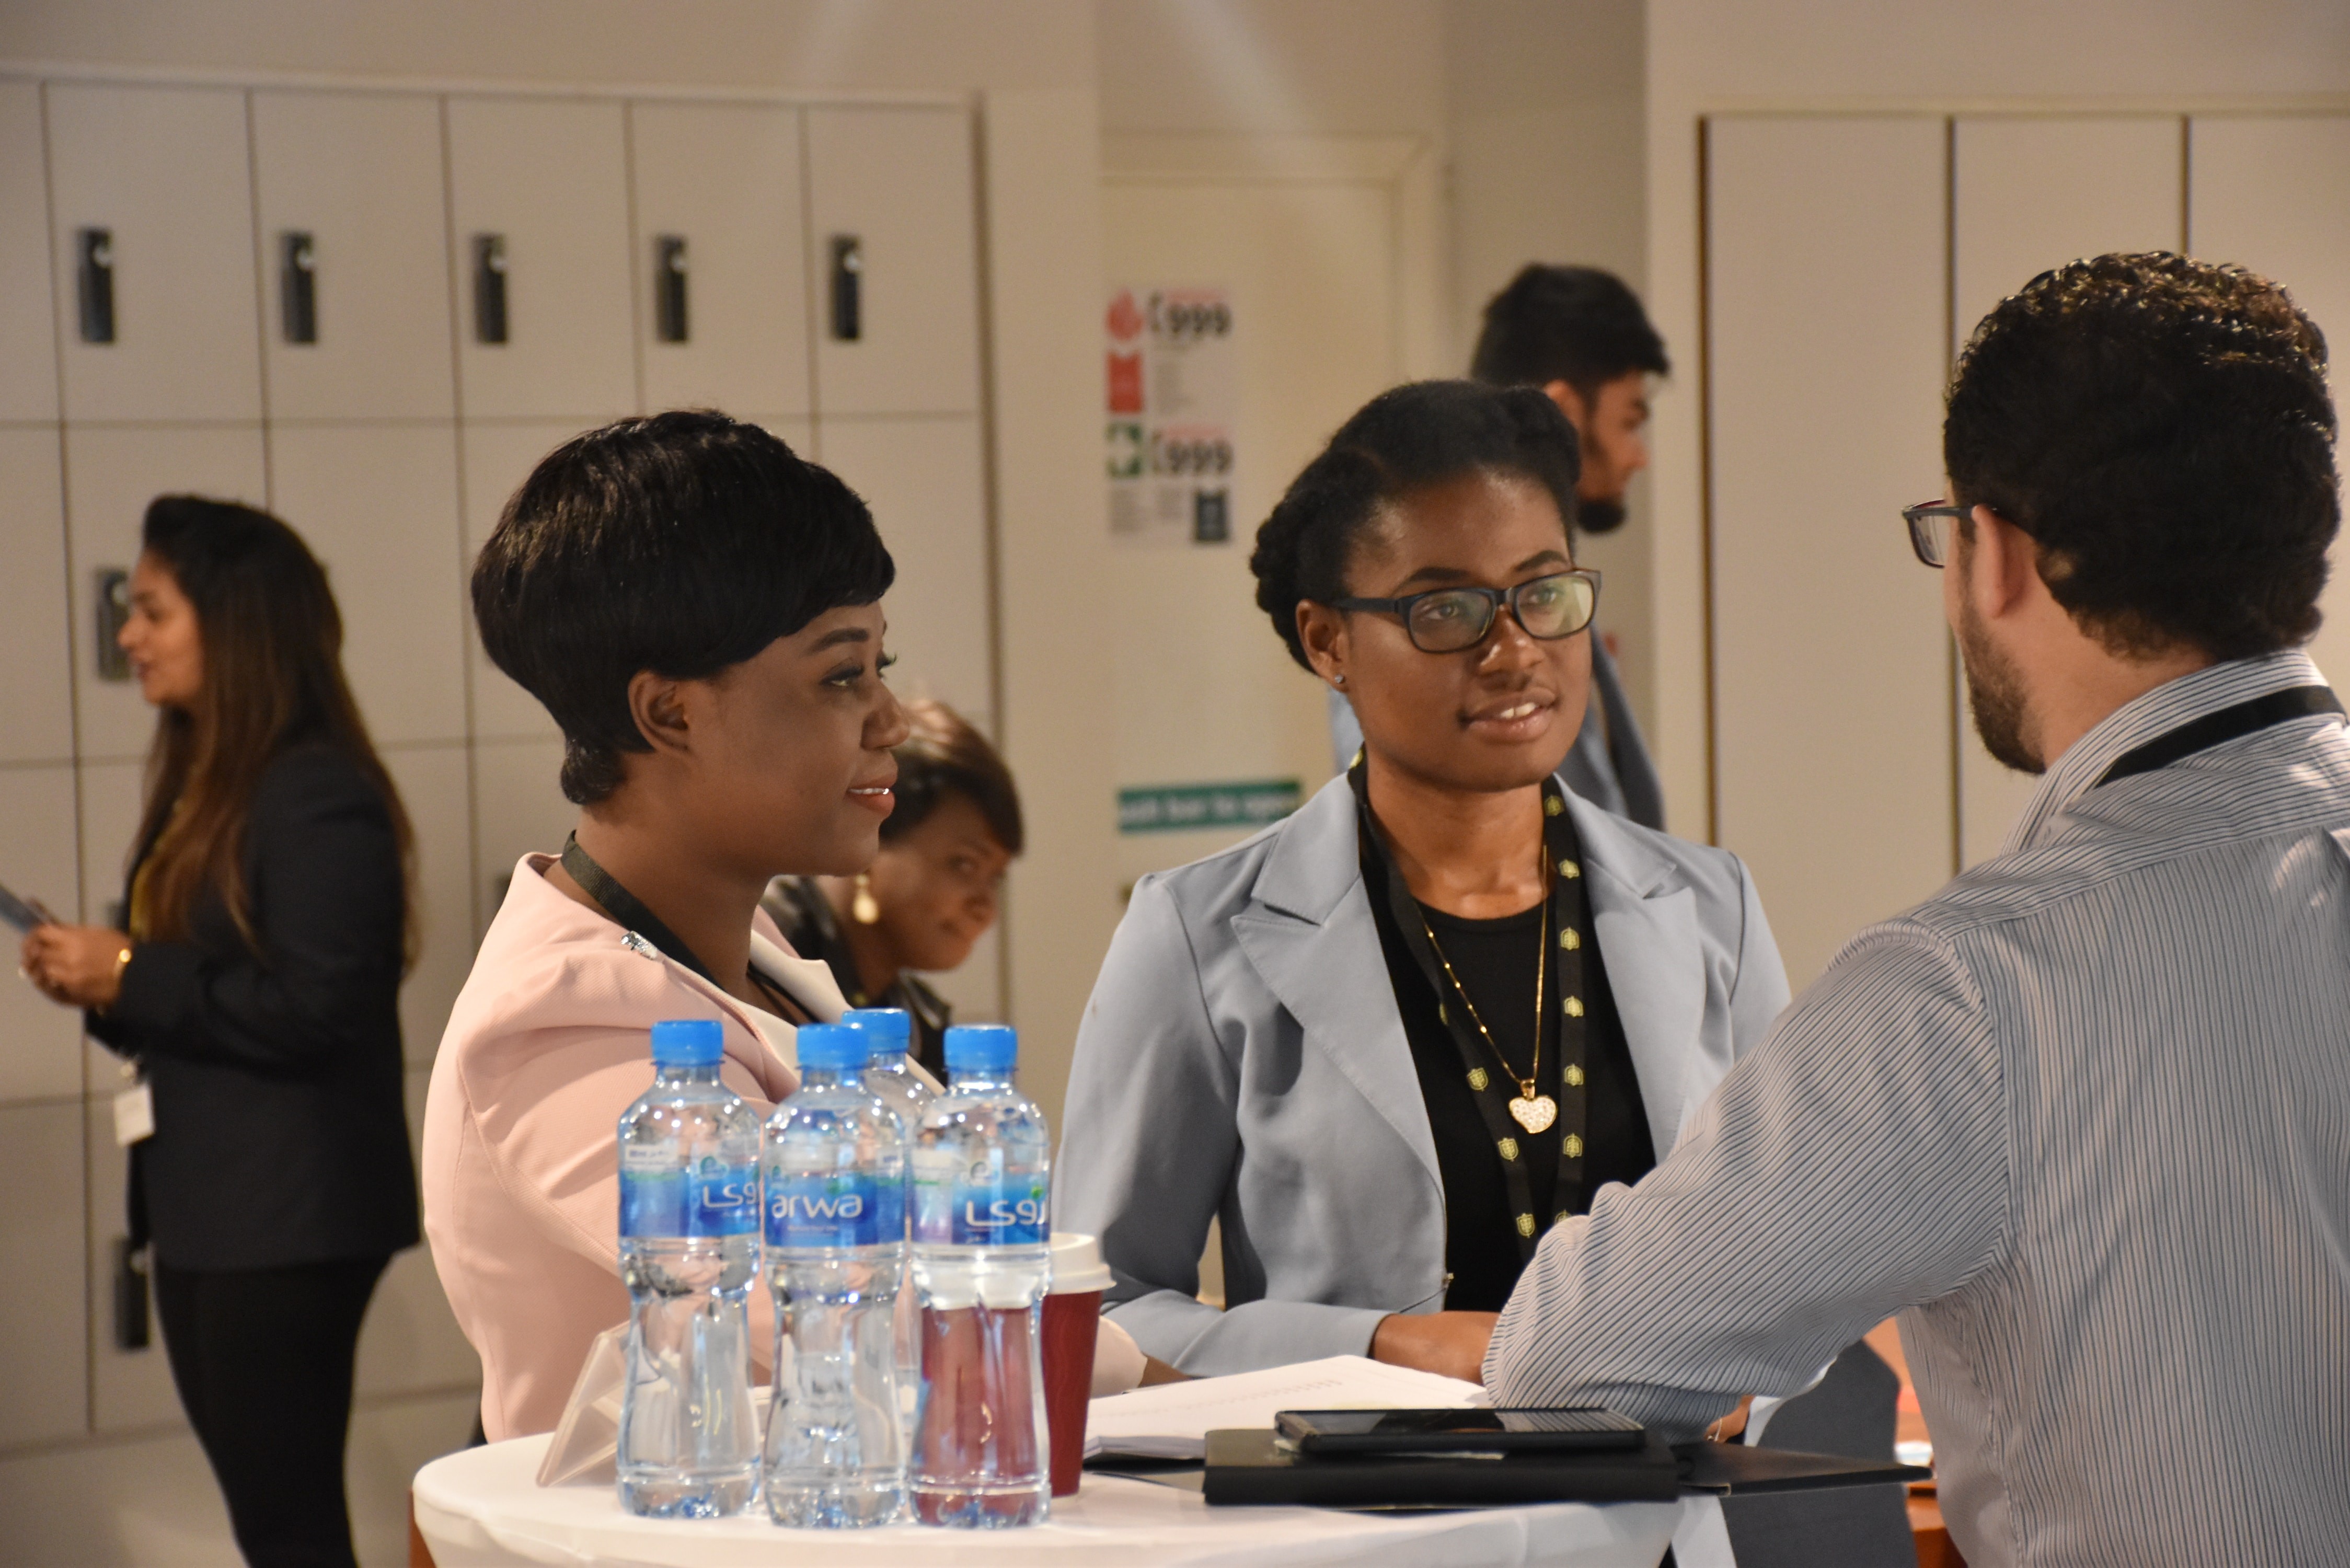 Top 5 tips to stand out at a careers fair